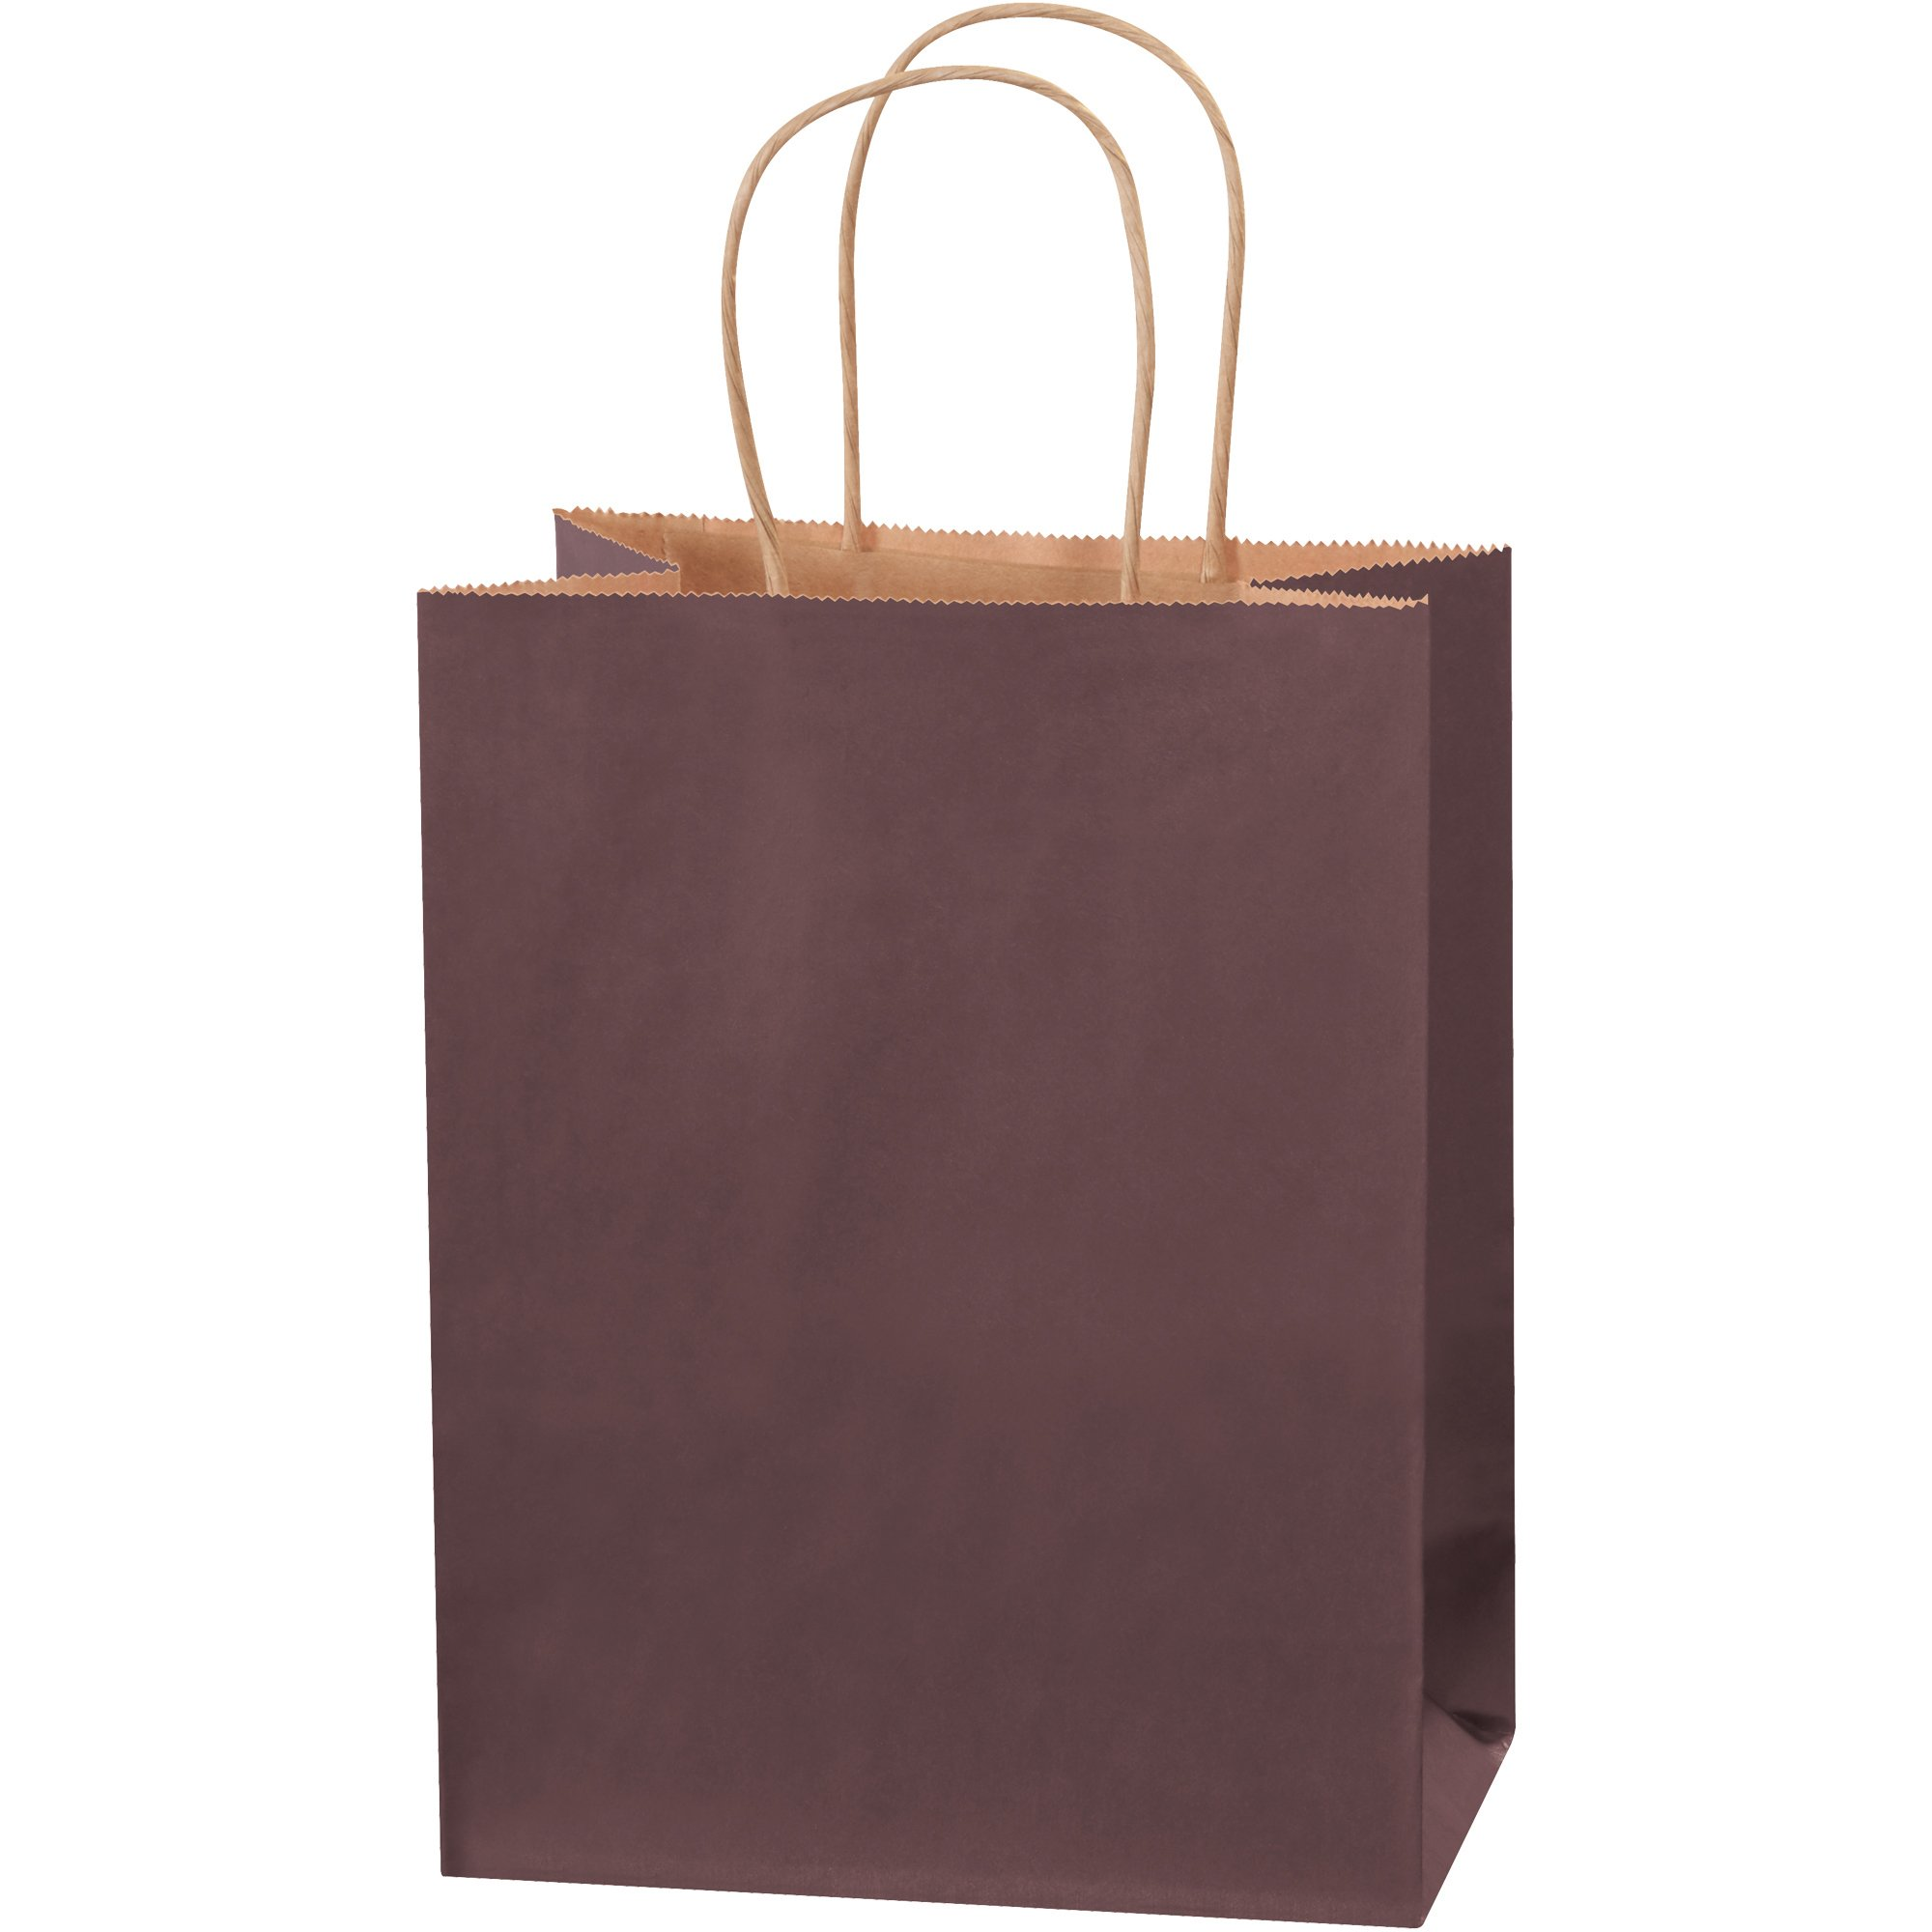 Tinted Shopping Bags, 8'' x 4 1/2'' x 10 1/4'', Brown, 250/Case